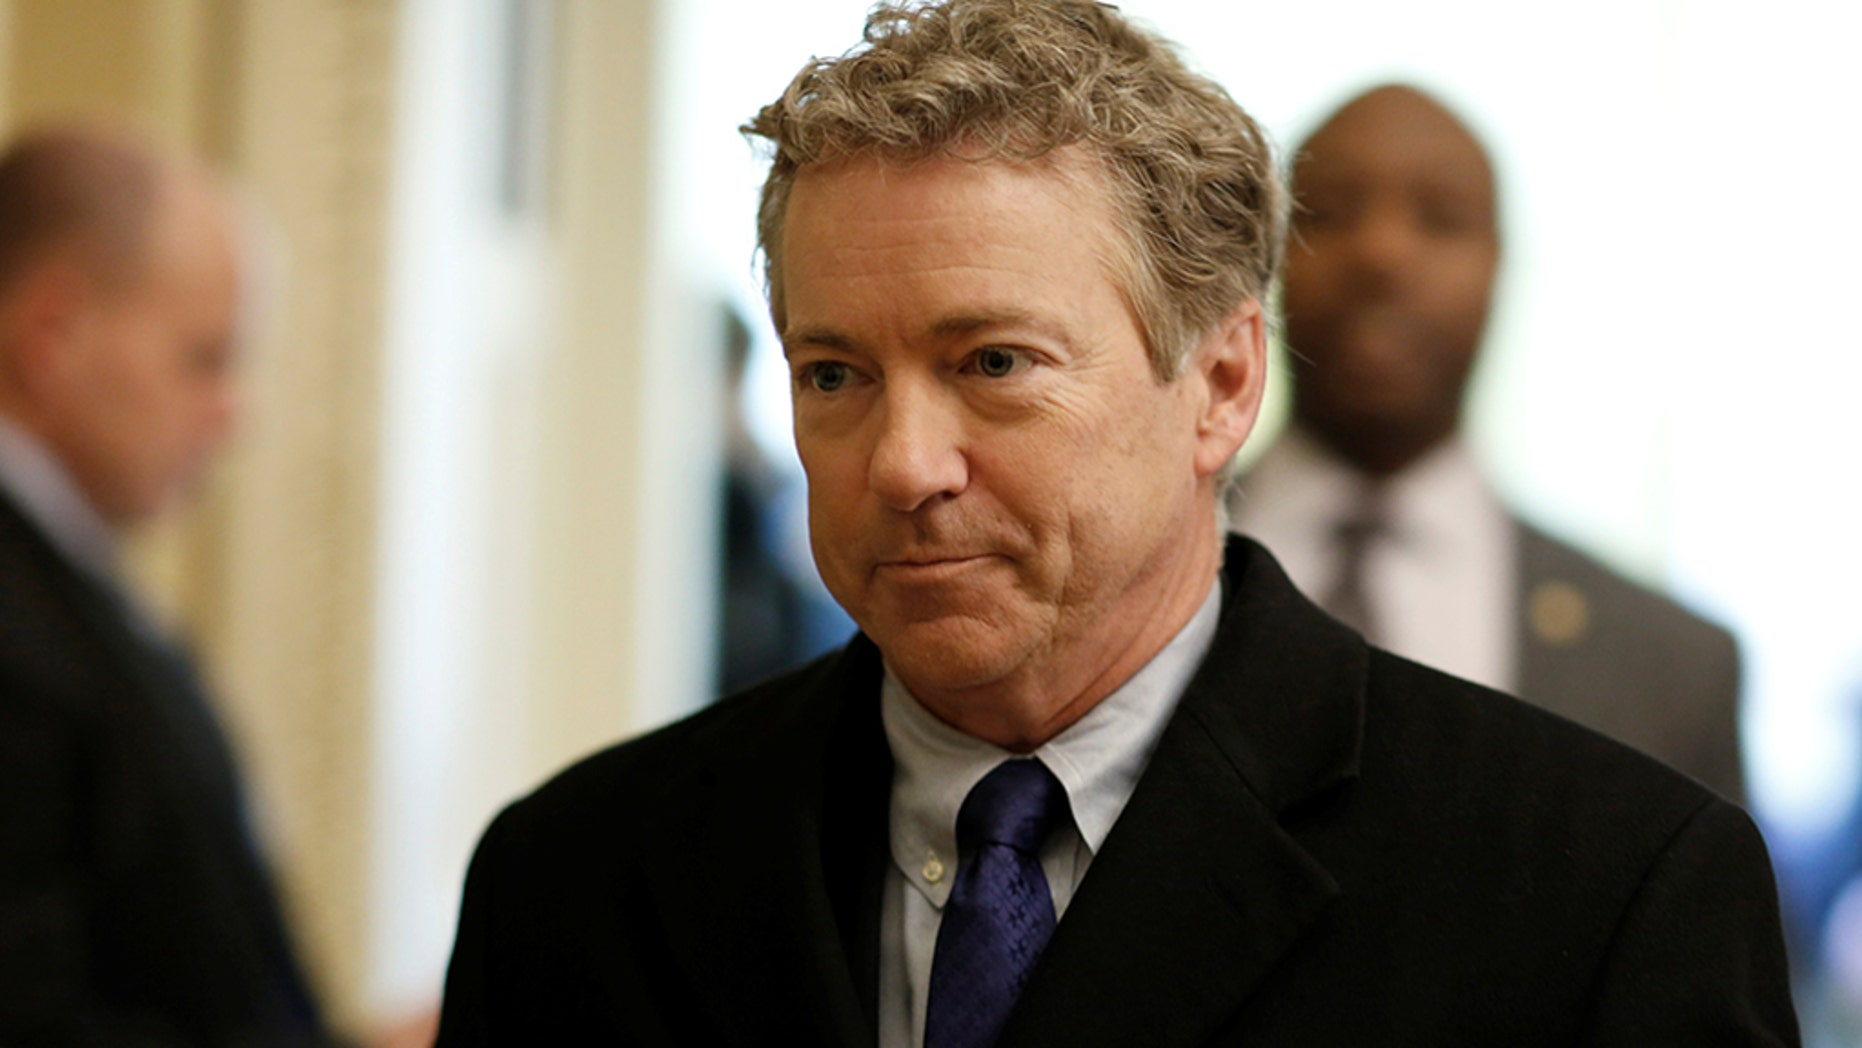 Rand Paul Awarded Over $580,000 in Damages Against Neighbor for Attack